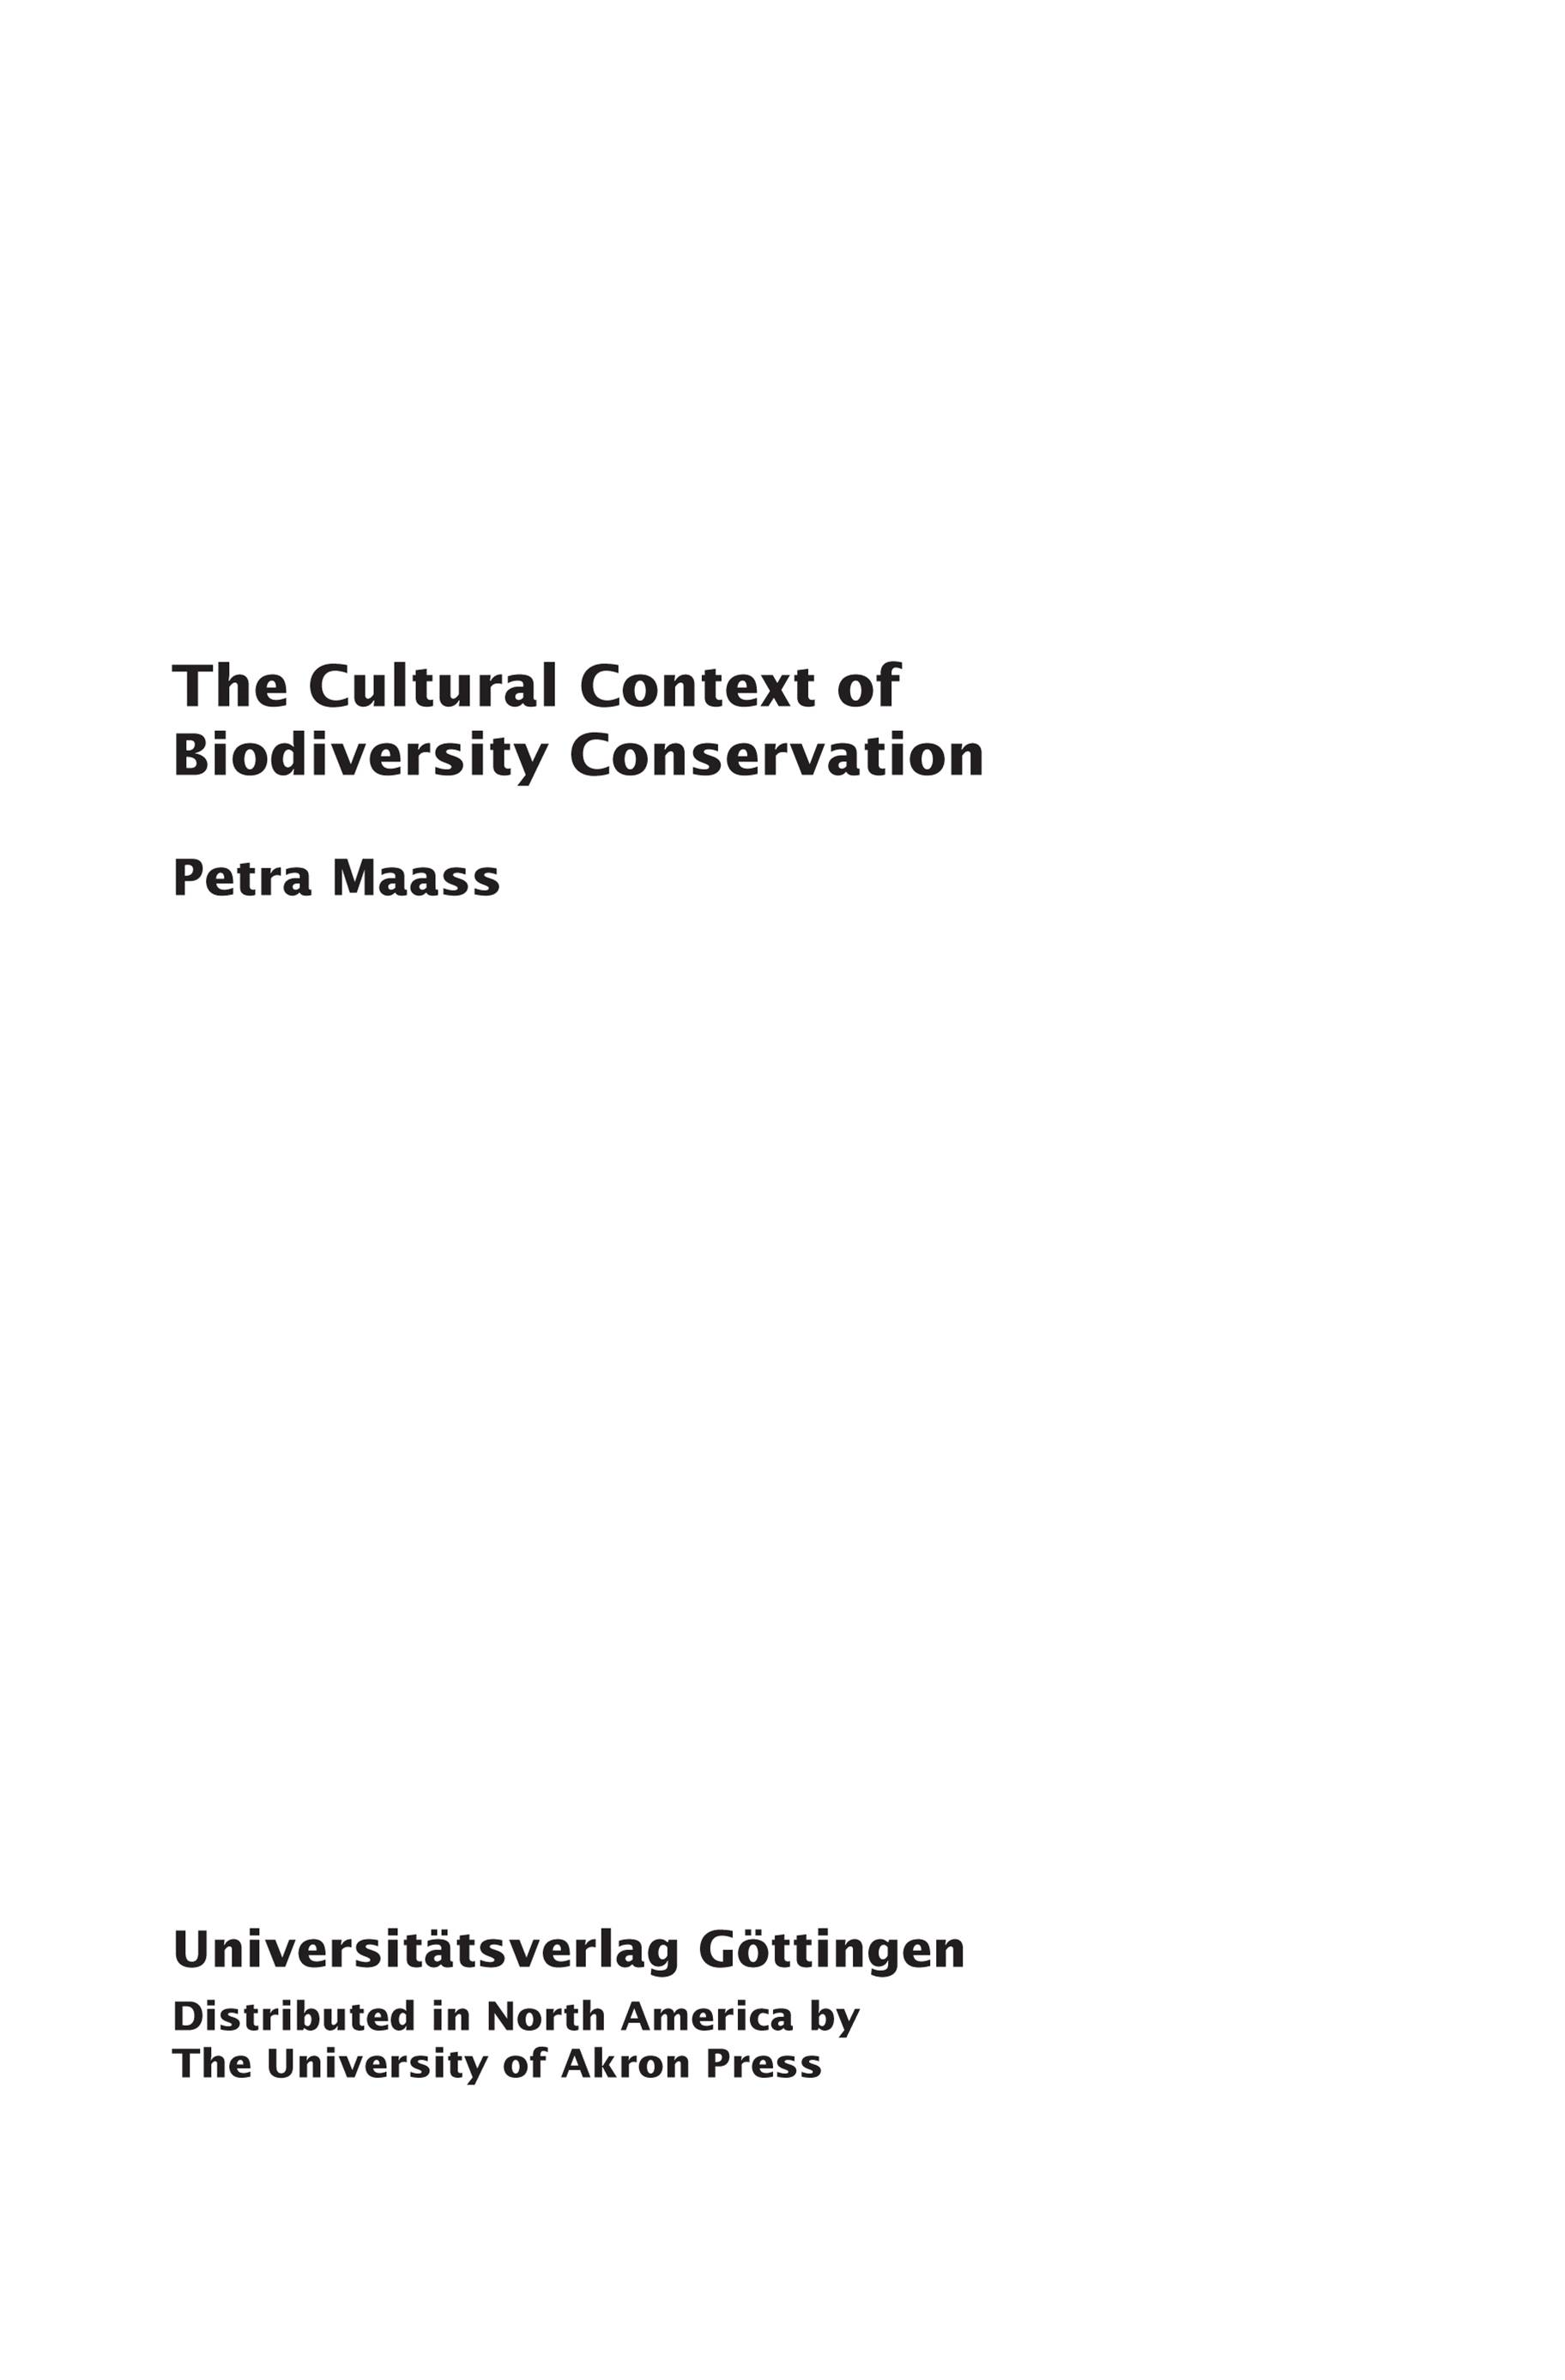 The Cultural Context of Biodiversity: Seen and Unseen Dimensions of Indigenous Knowledge among Q'eqchi' Communities in Guatemala By: Petra Maass